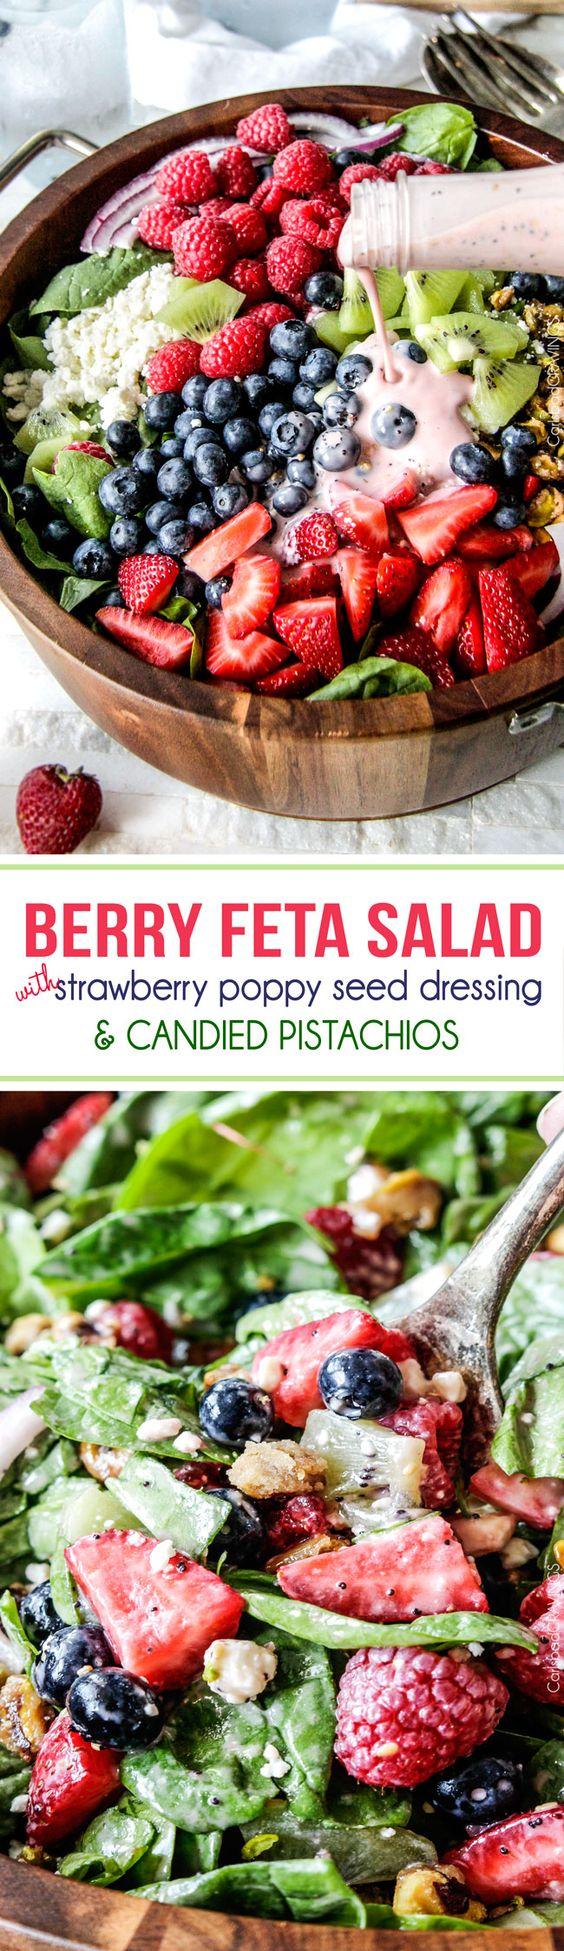 Berry Feta Spinach Salad with Creamy Strawberry Poppy Seed Dressing and CANDIED pistachios is so easy, delicious and beautiful for company, it is sure to become a new favorite!